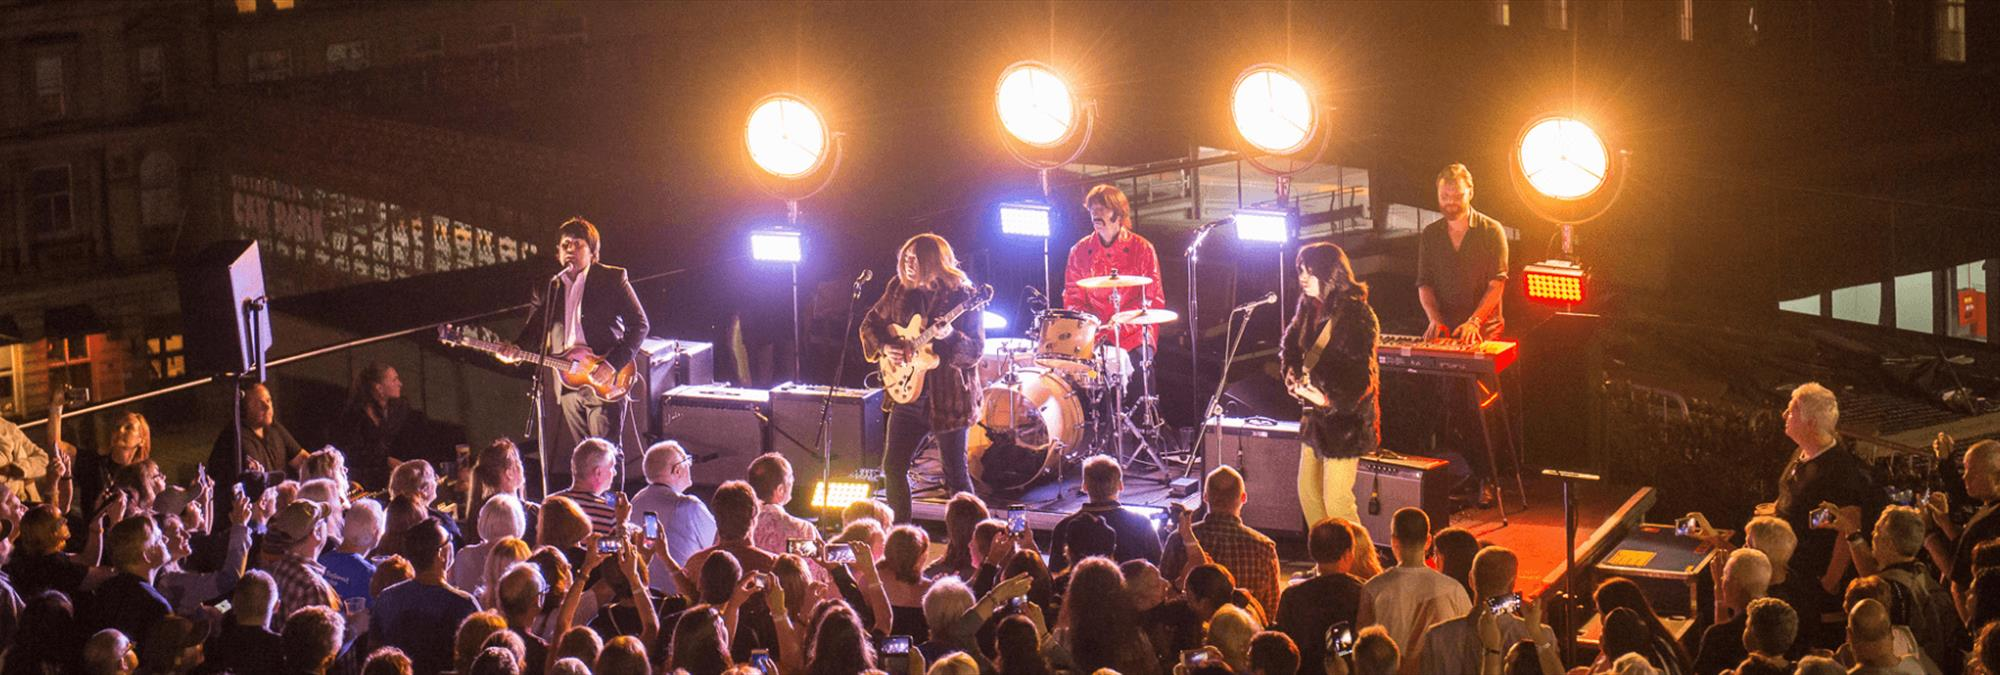 A band performing on the roof at night time.